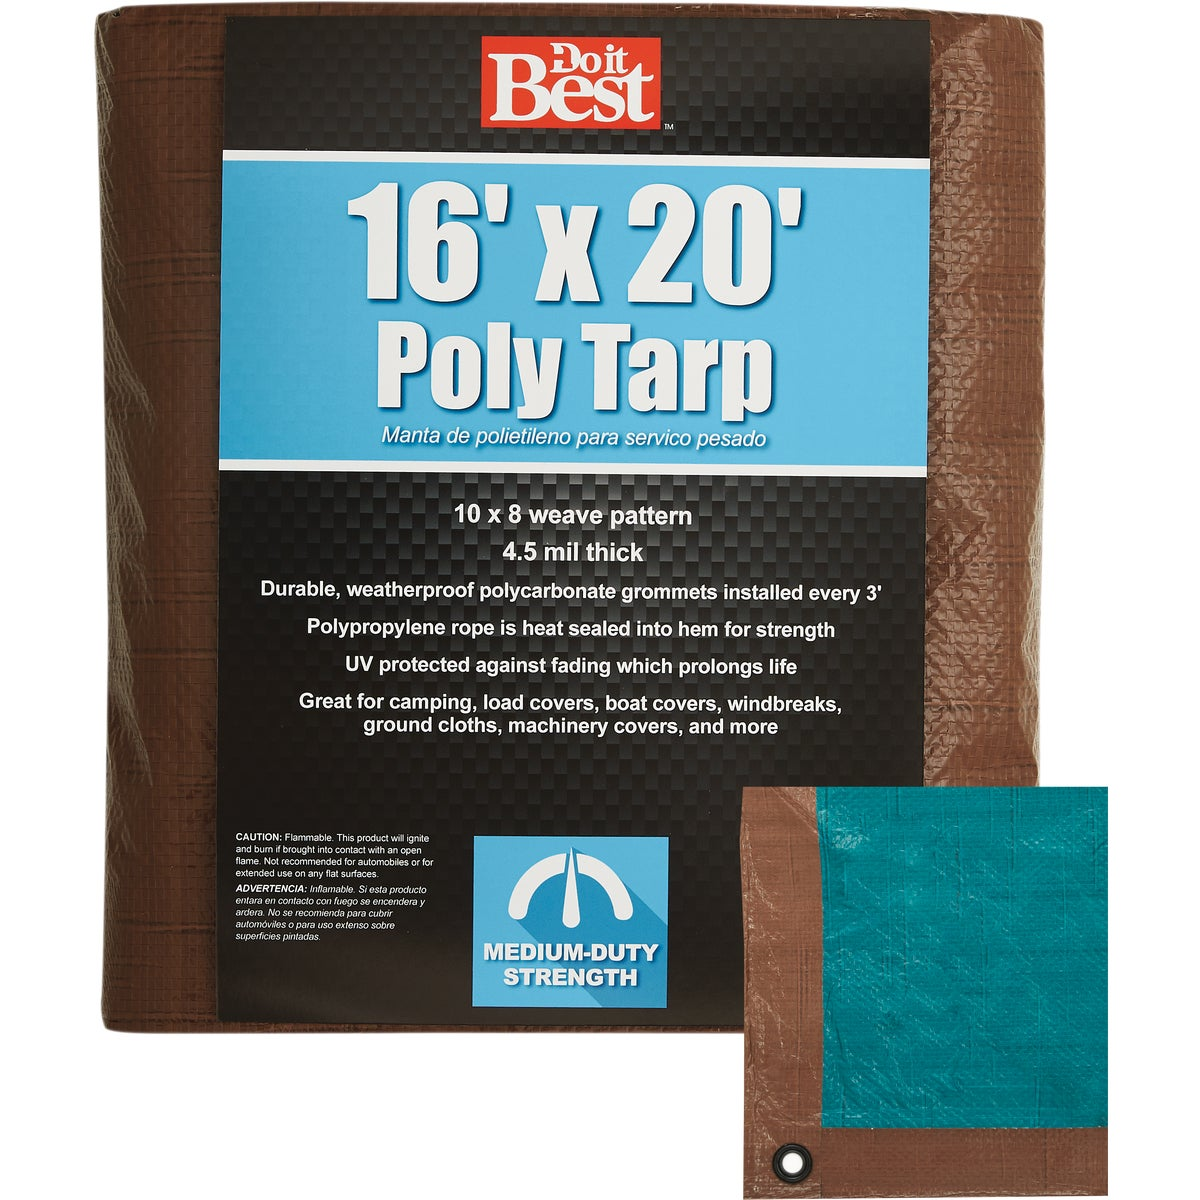 16X20 BR/GR MEDDUTY TARP - 764396 by Do it Best